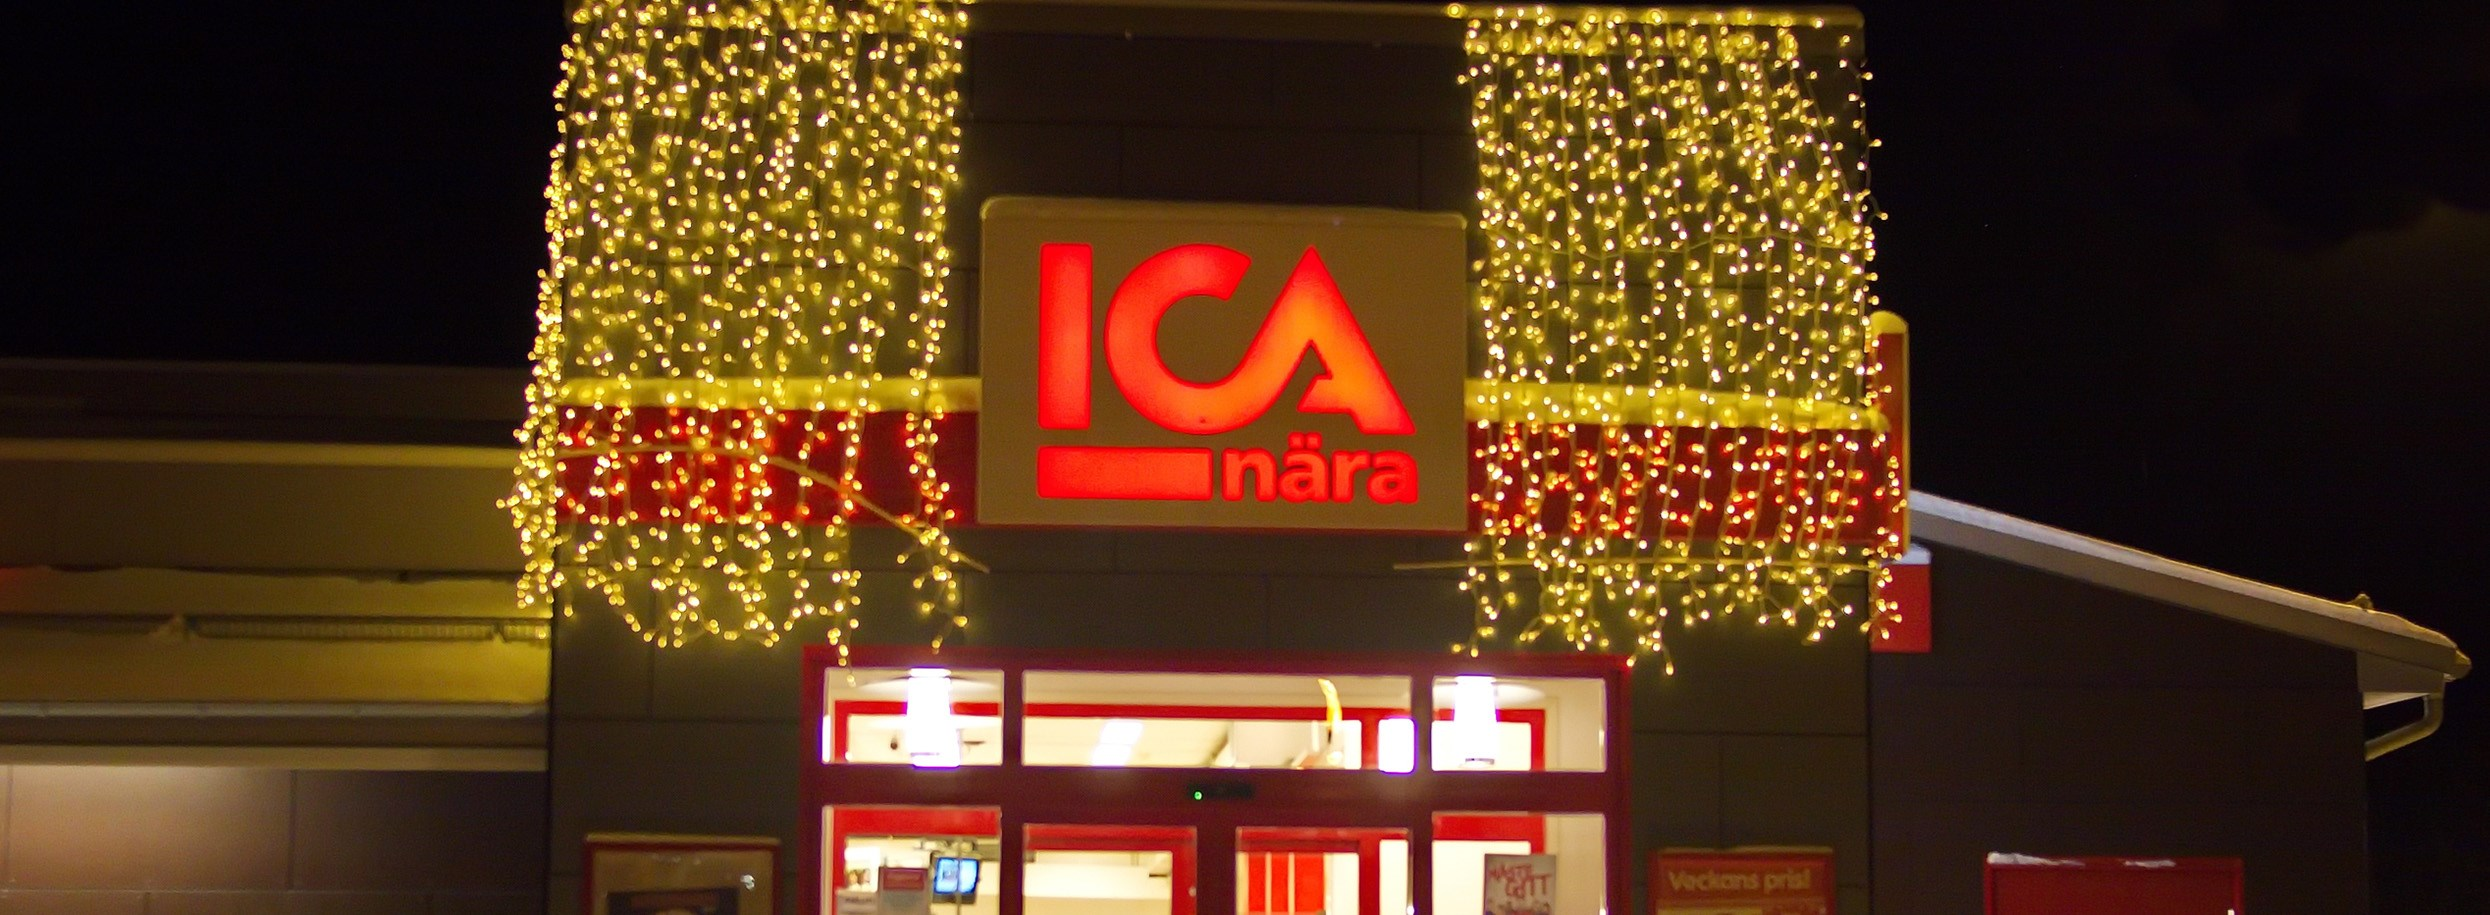 Swedish ICA has record online sales and trust it will increase